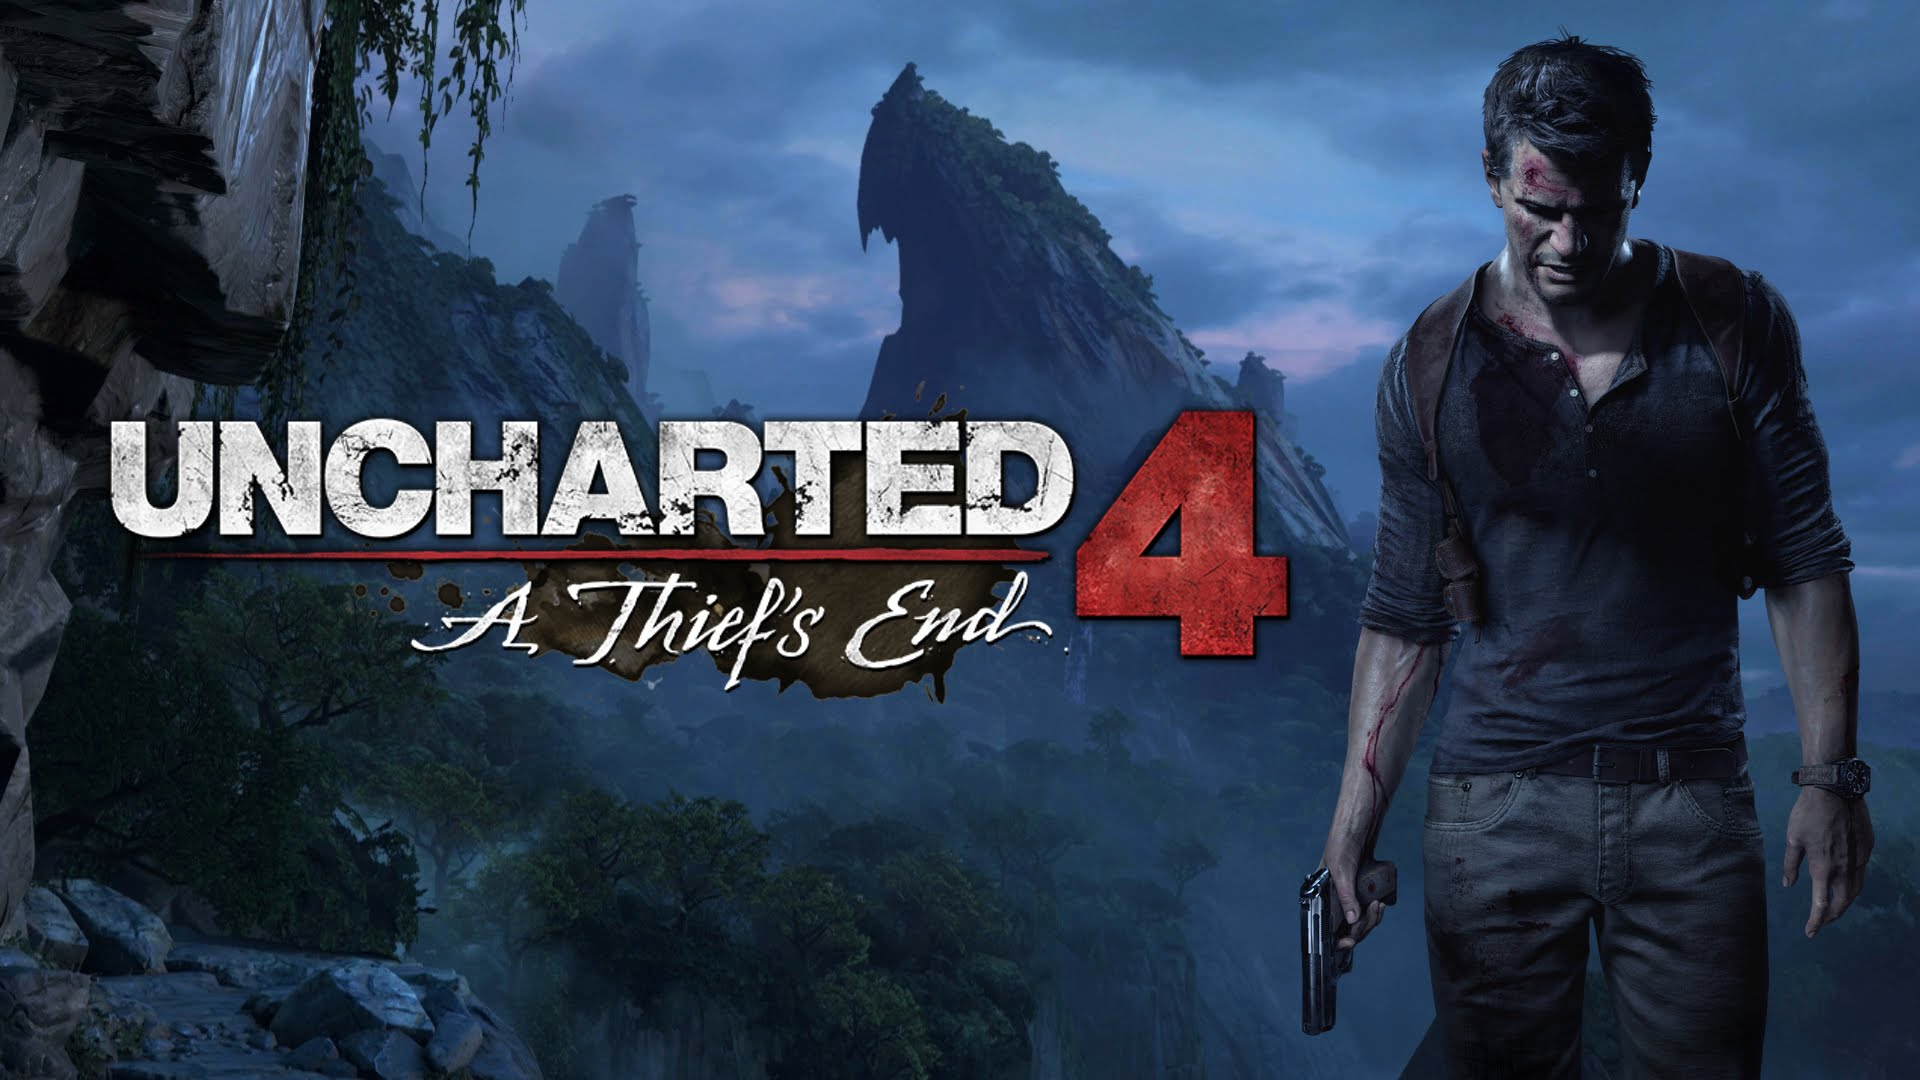 http://www.meups4.com.br/wp-content/uploads/2016/05/Uncharted-4_PS4.jpg